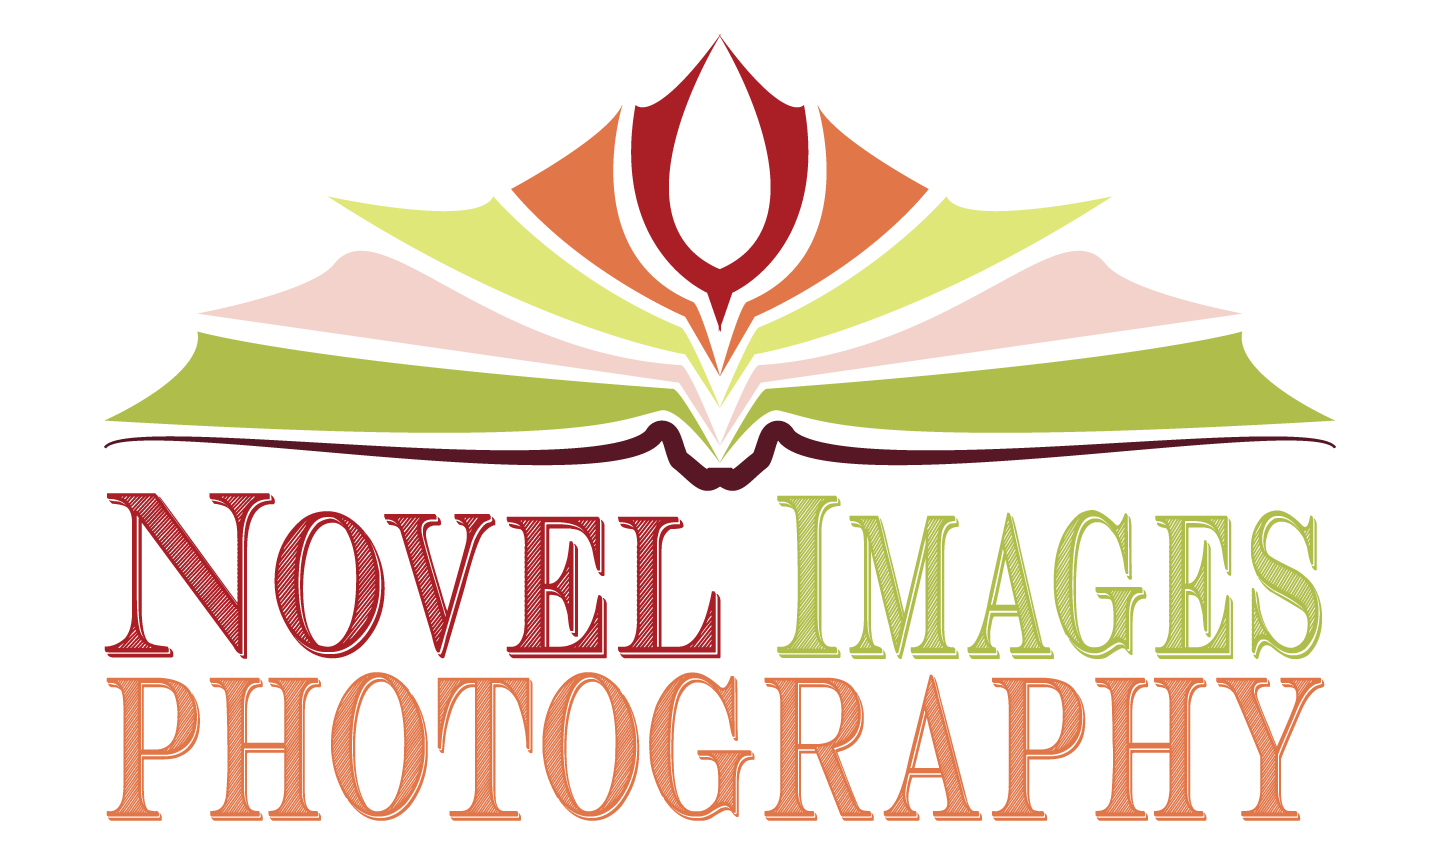 Novel Images Photography